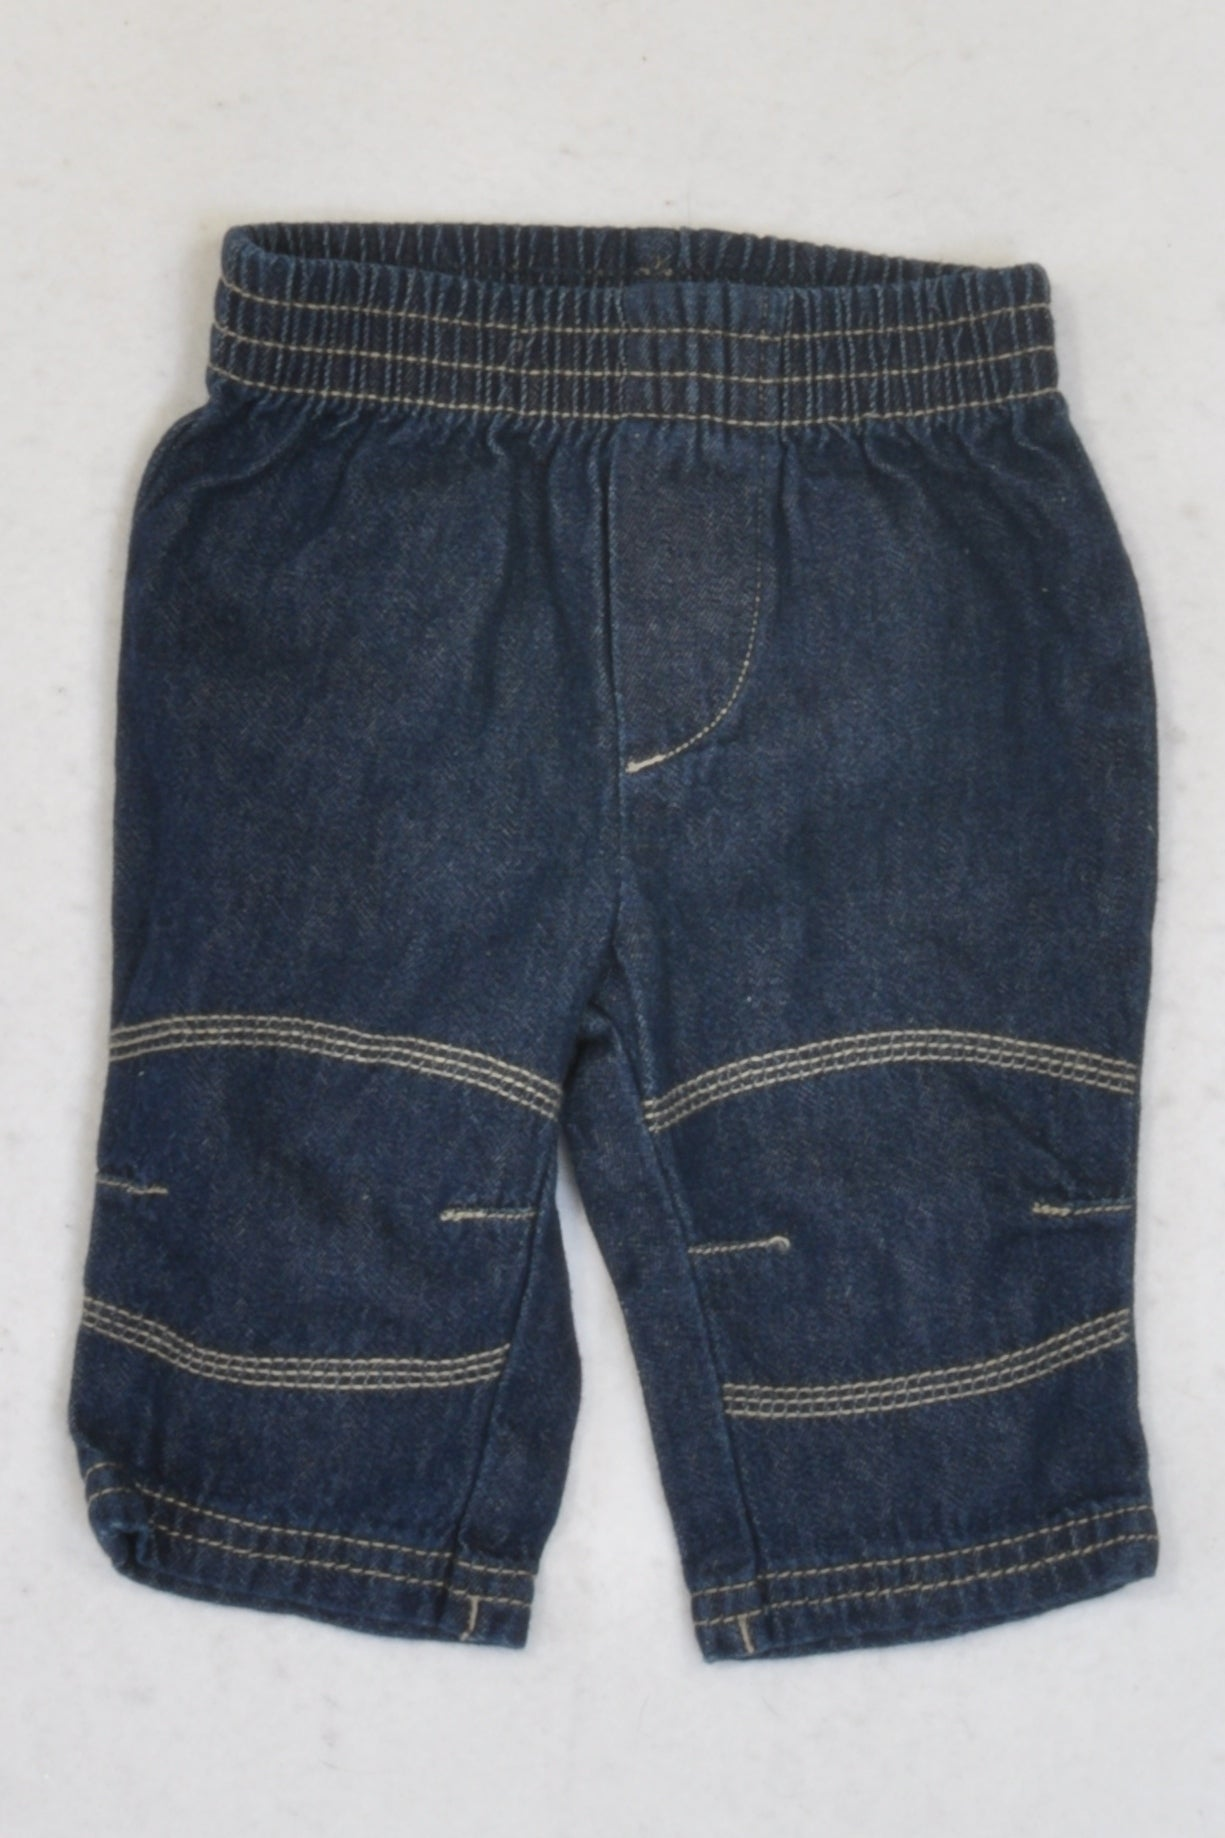 Woolworths  Dark Denim Elasticated Jeans Boys 0-3 months